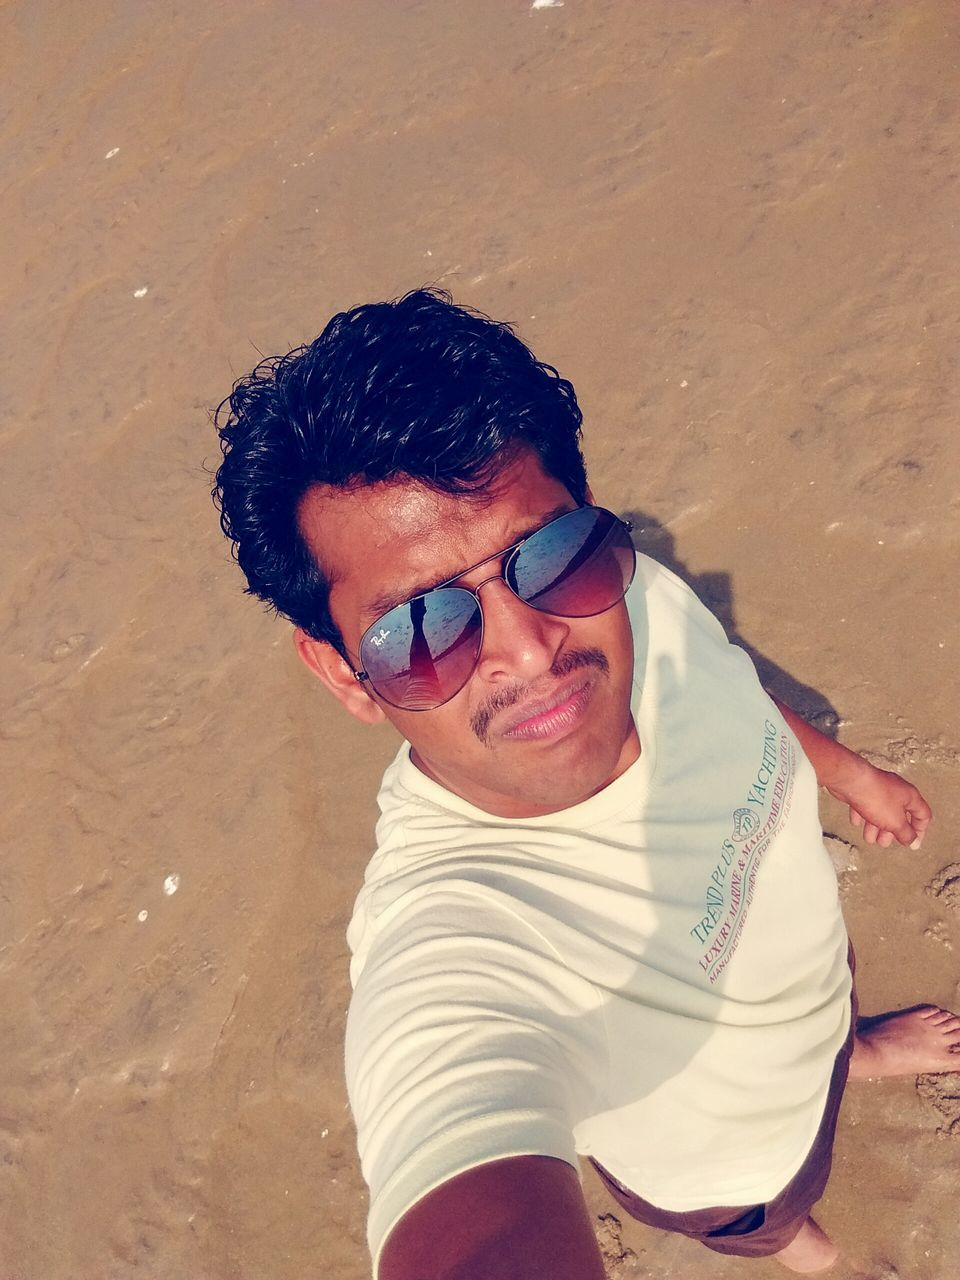 real people, sand, one person, beach, happiness, leisure activity, smiling, looking at camera, portrait, lifestyles, front view, high angle view, casual clothing, outdoors, day, young adult, childhood, eyeglasses, nature